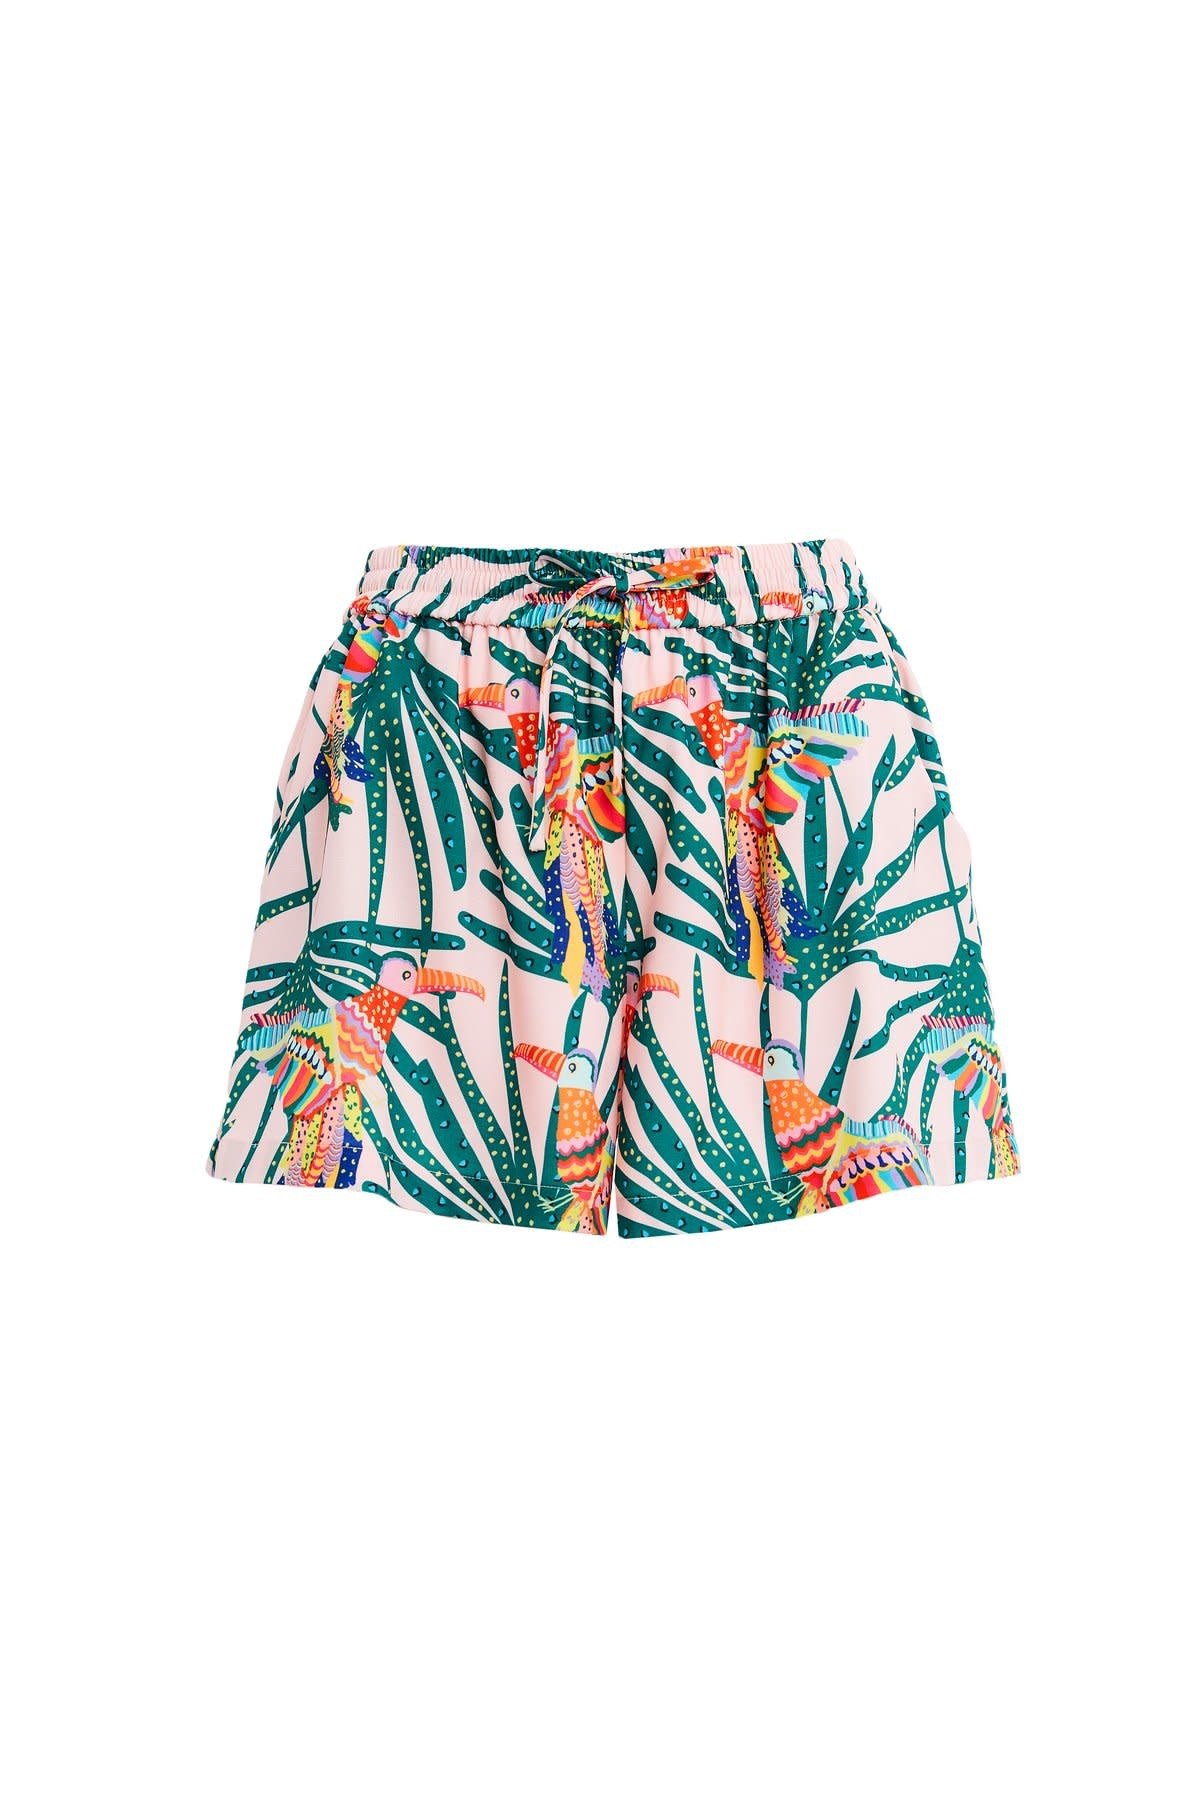 Crosby By Mollie Burch Sara Short in Parrot Party